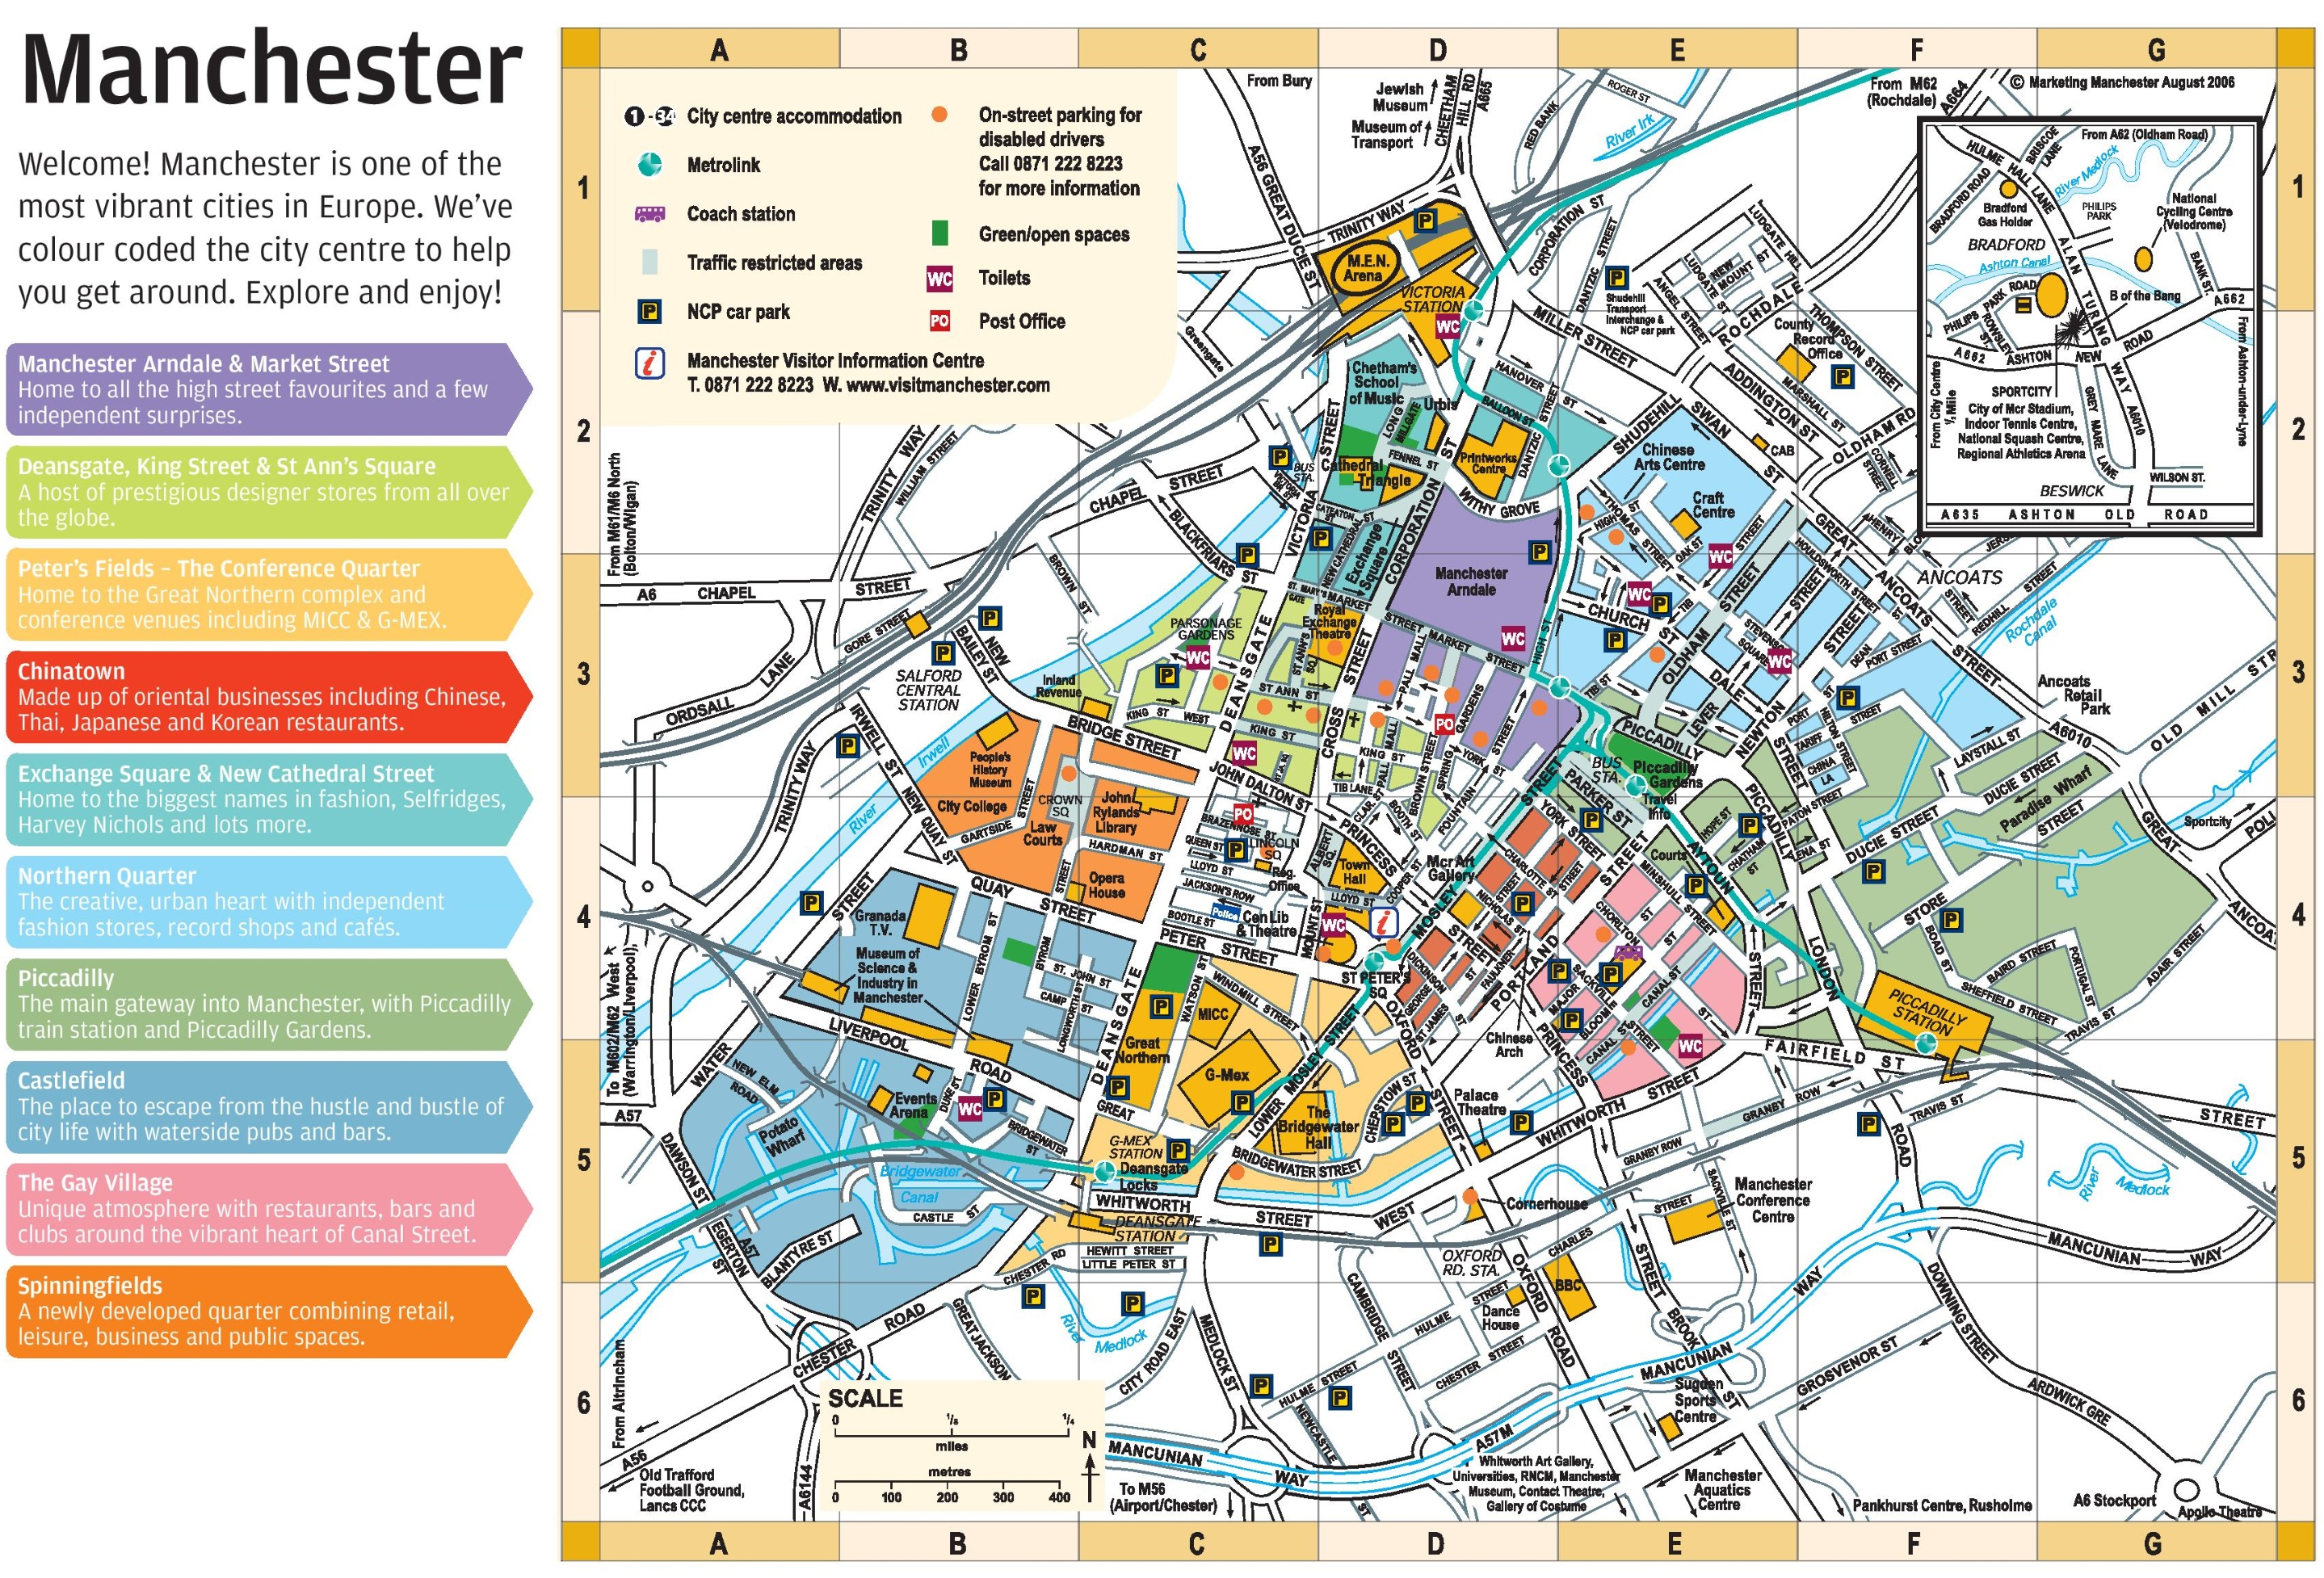 Map Of Manchester City Centre Manchester city center map Map Of Manchester City Centre